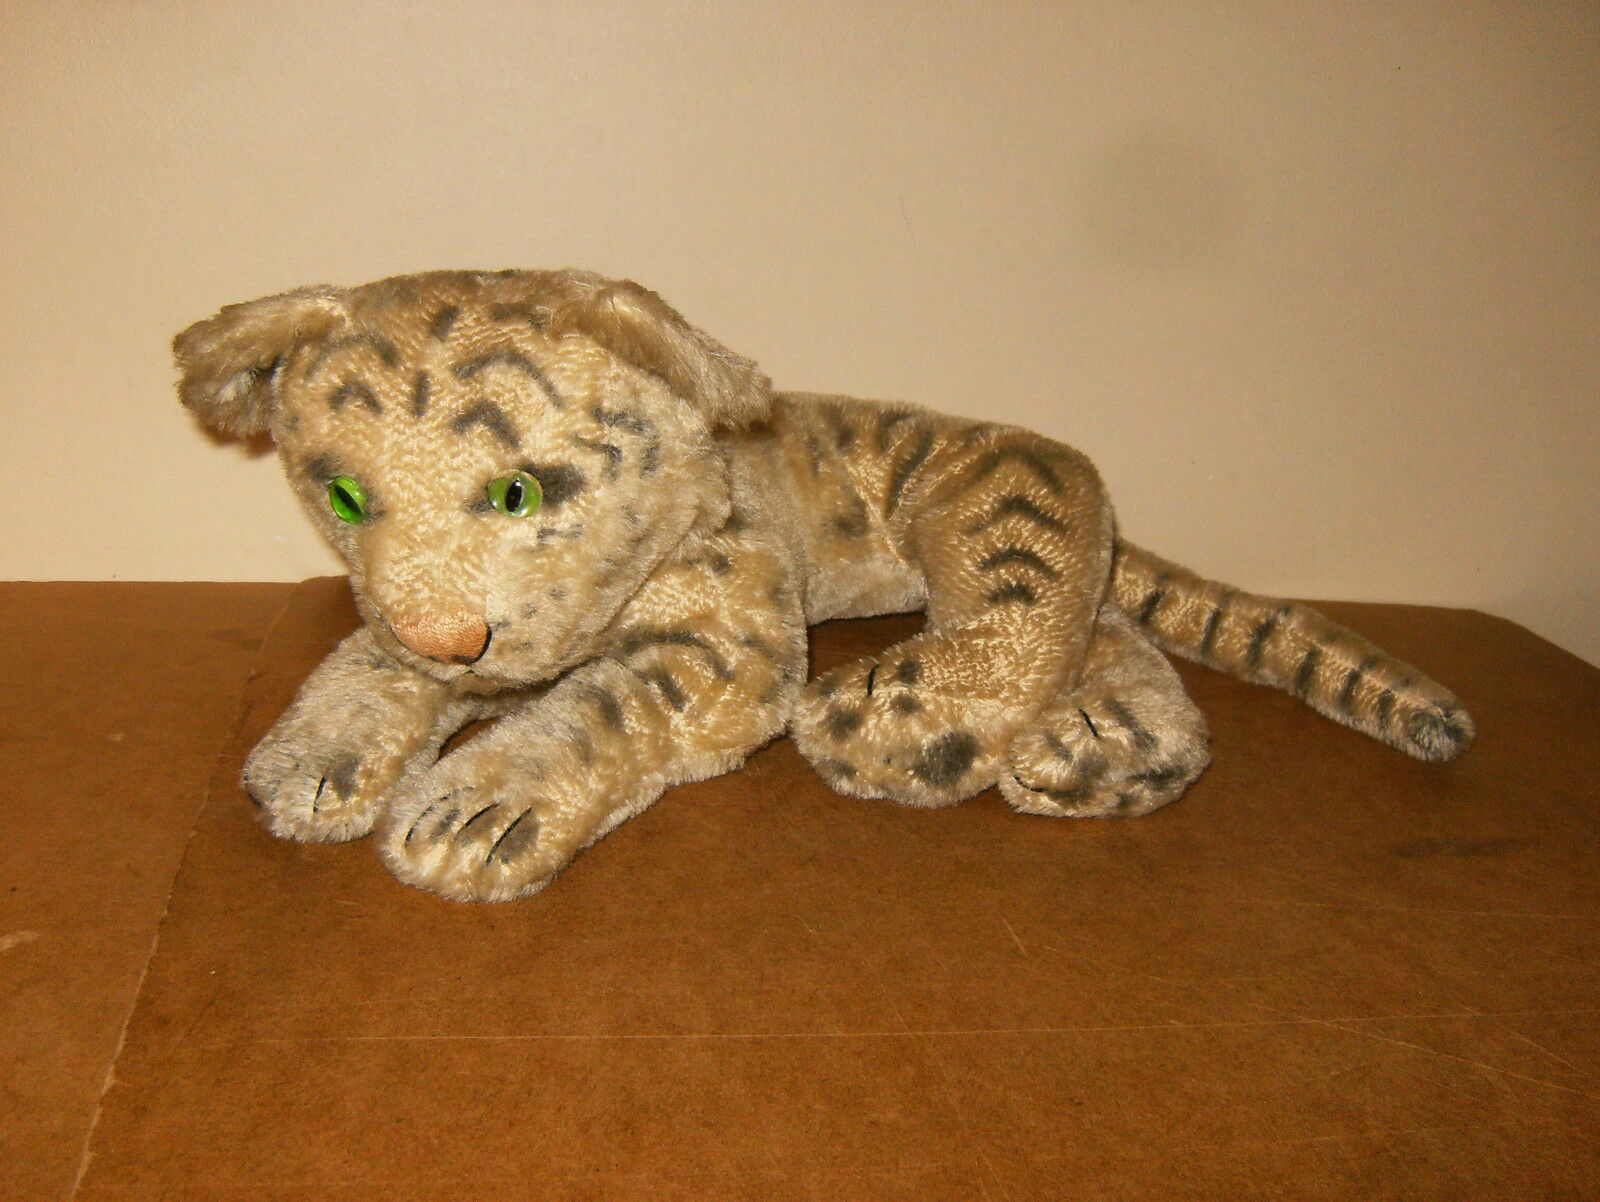 Ancienne peluche TIGRE Weiß félin 50cm - vintage stuffed Weiß TIGER 19 inches